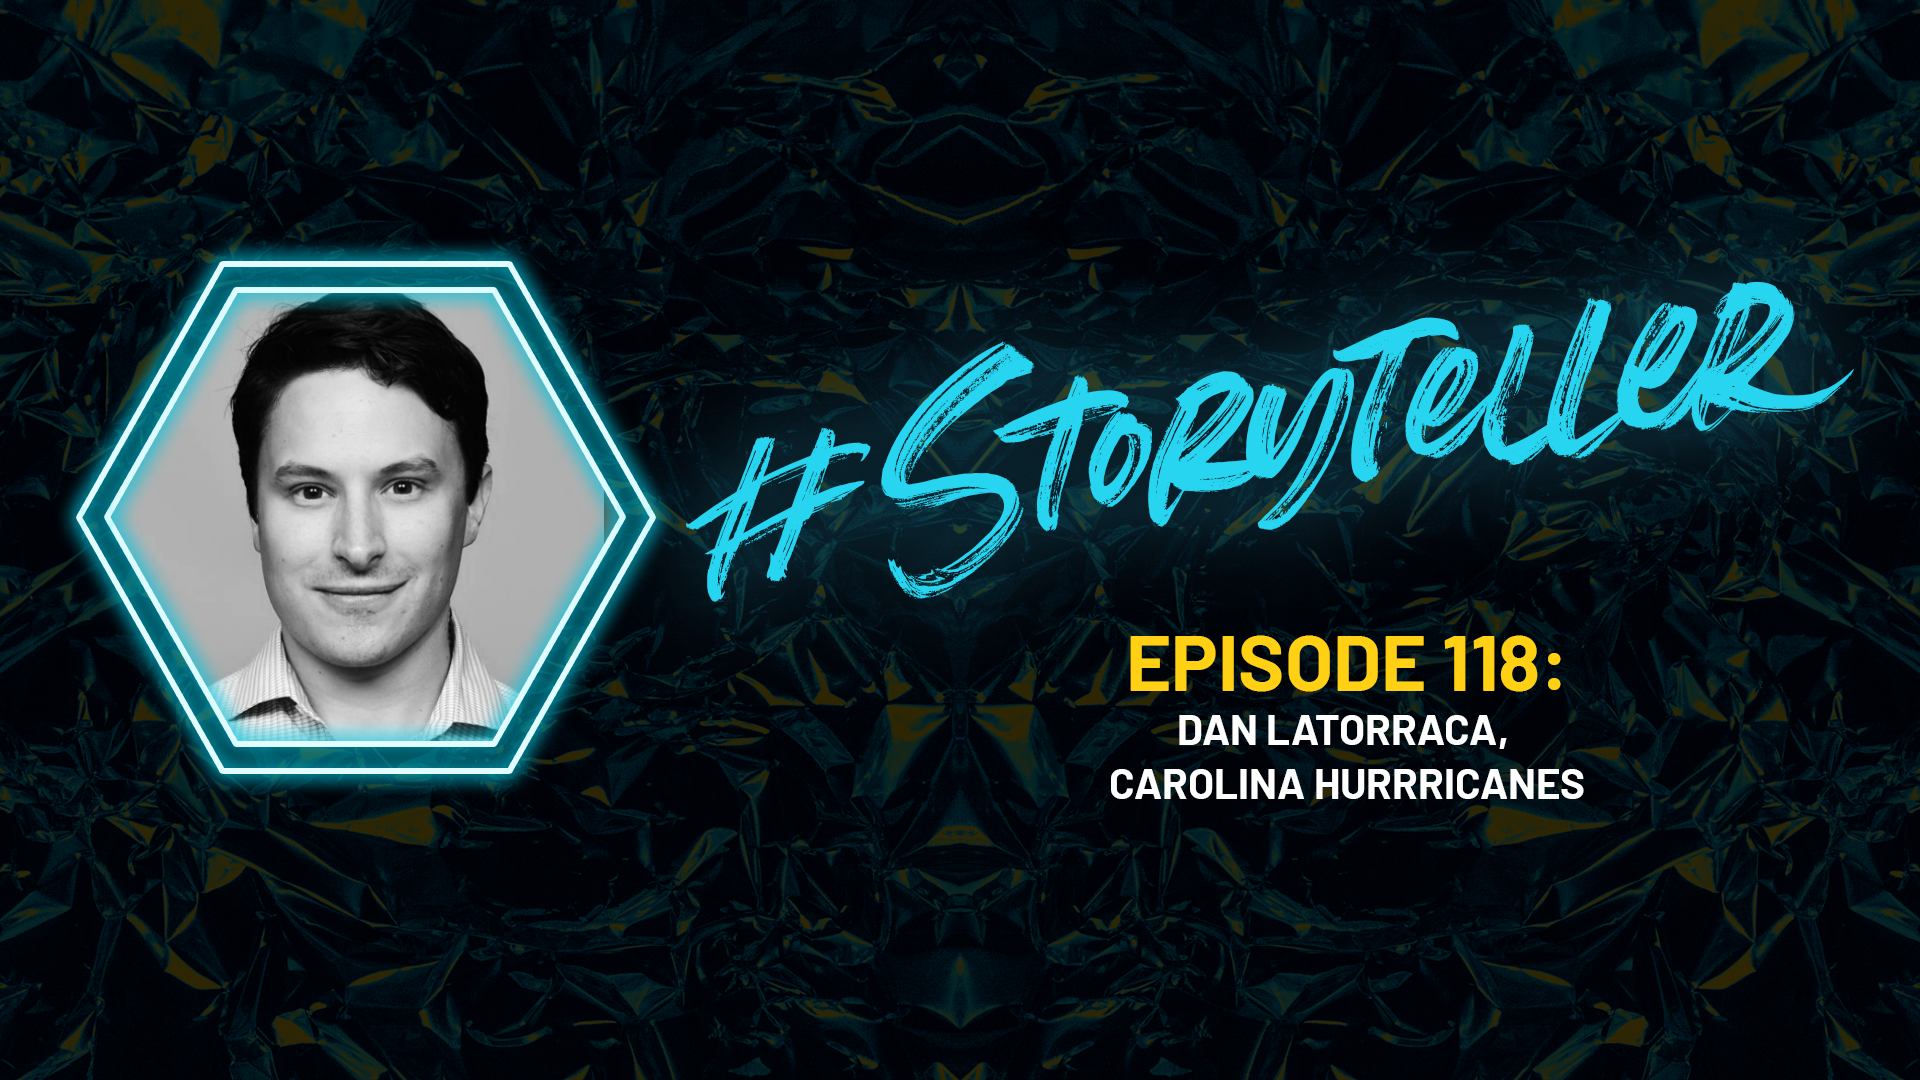 #Storyteller: Episode 118 with Carolina Hurricane's Dan LaTorraca